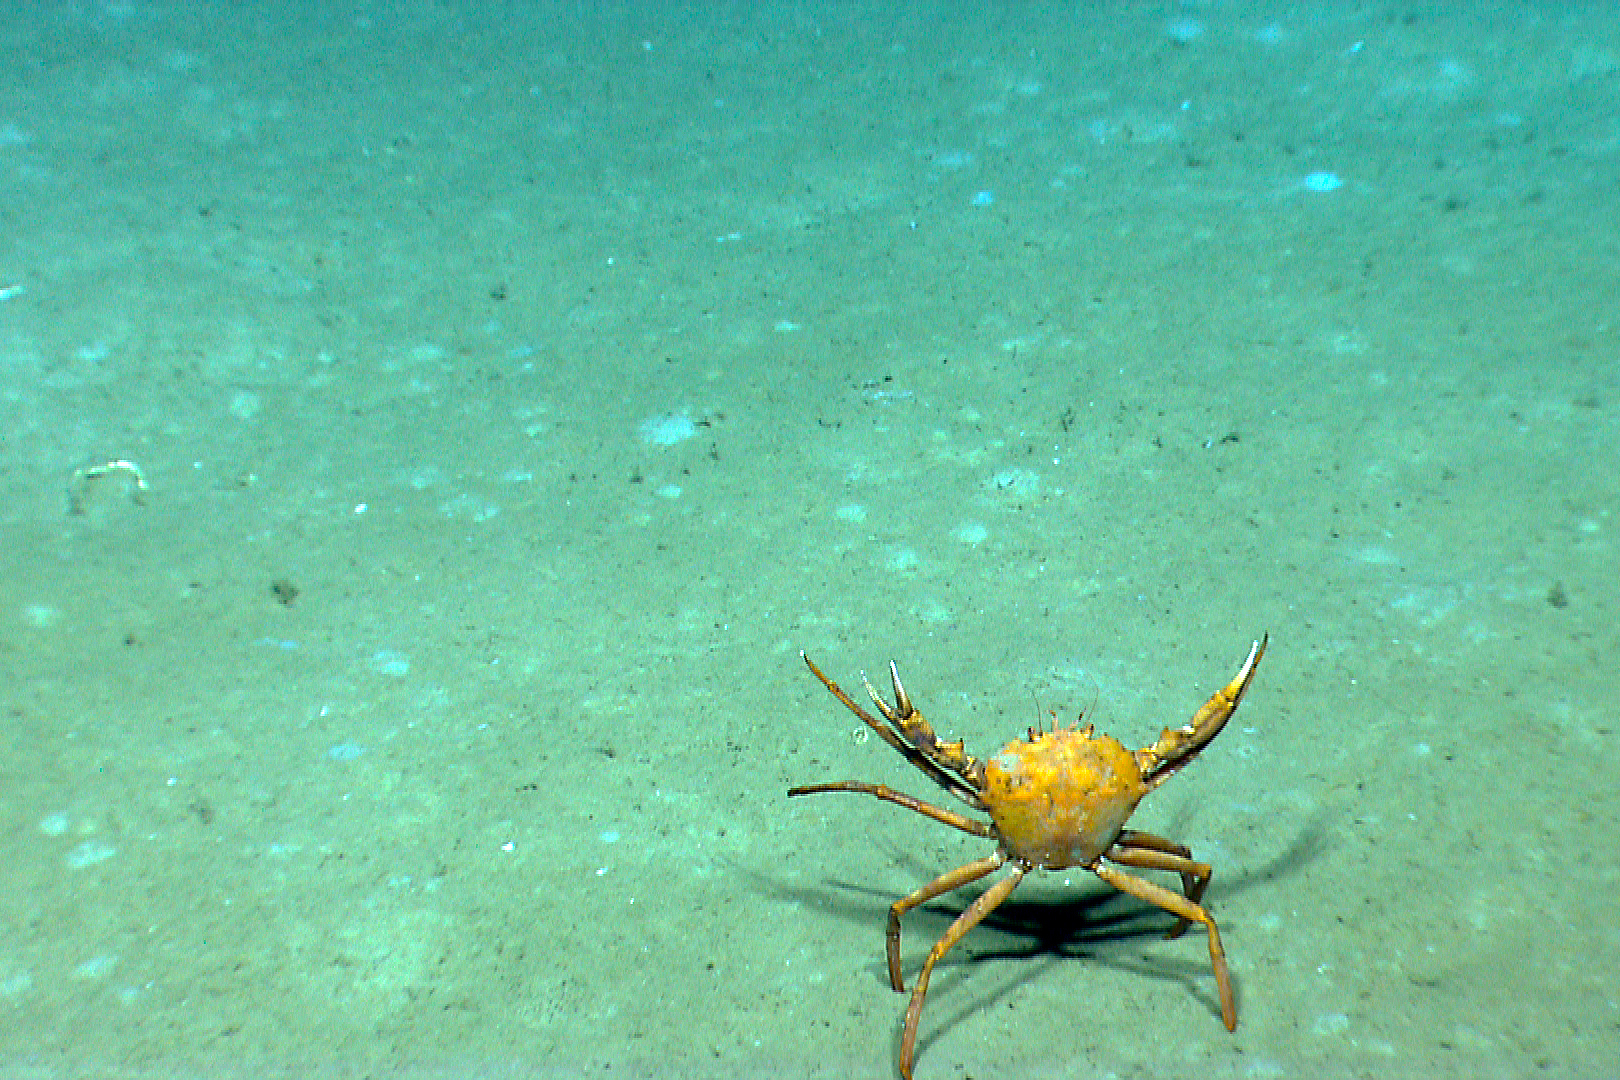 A golden crab, Chaceon fenneri, seen on a deep-sea exploration of the Gulf of Mexico 2014